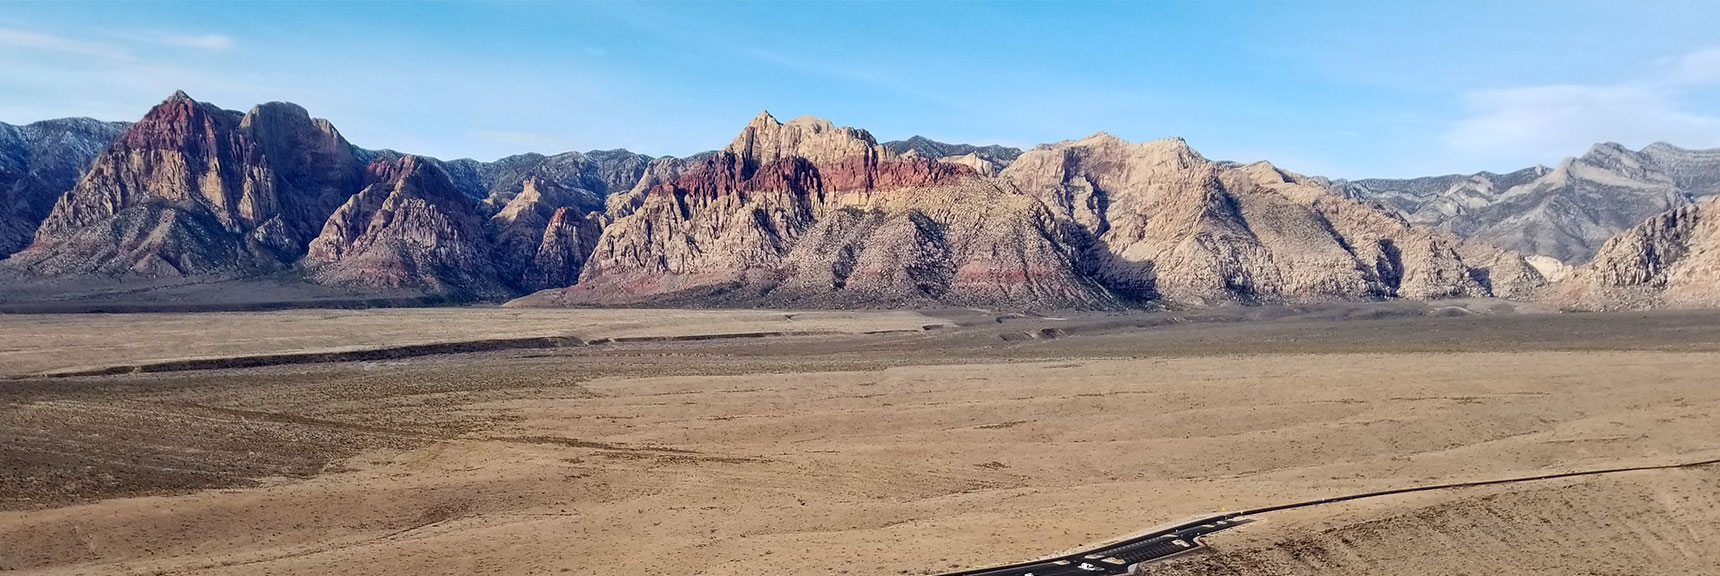 View Across Red Rock National Park from the Summit of Calico Hills in Nevada